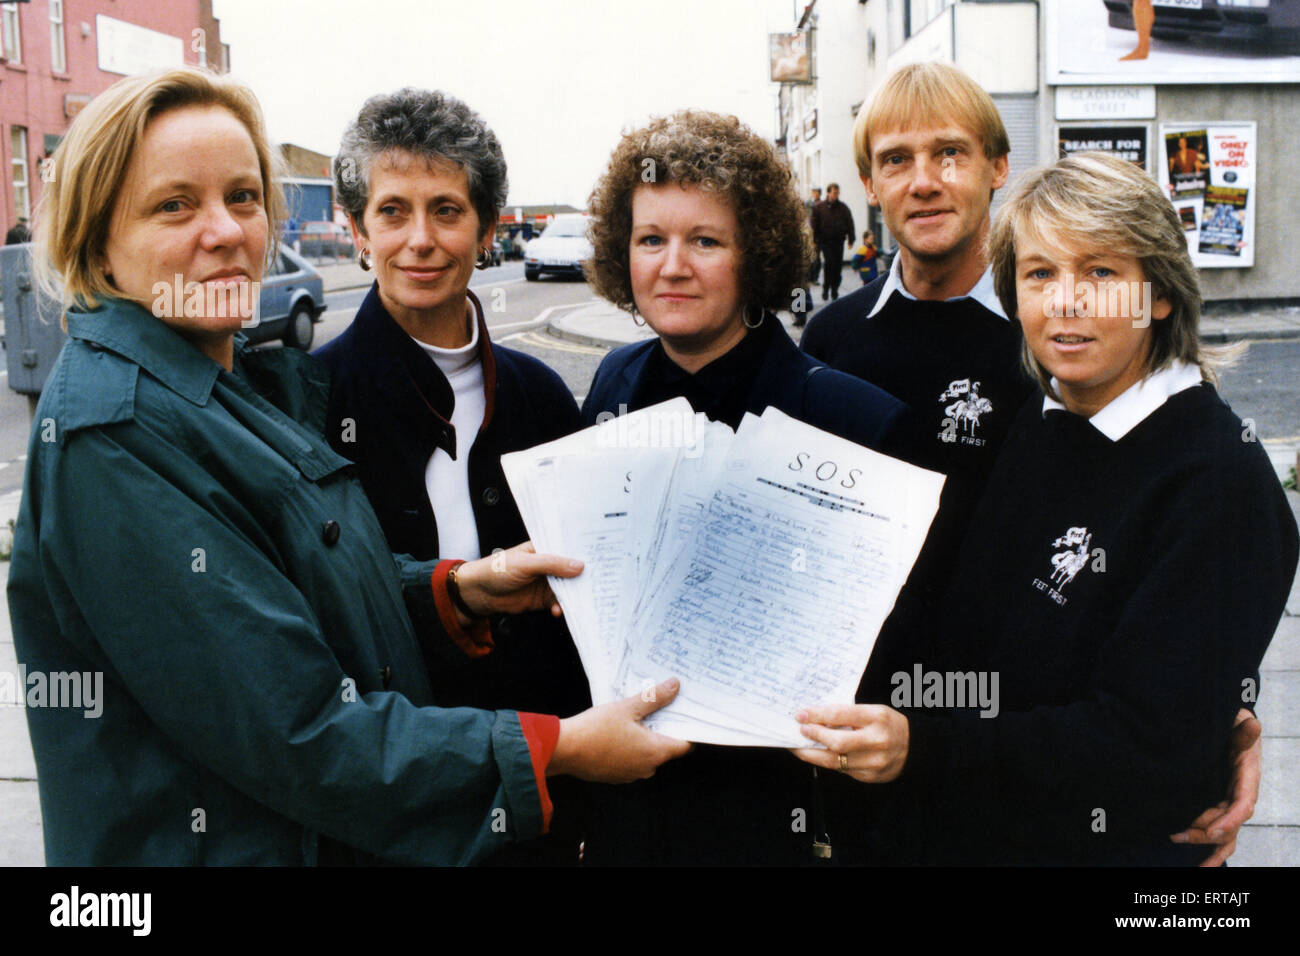 Redcar MP Mo Mowlem receives the petition to Save our Sun from Jan Holmes, Sue Willard and Raymond and Jackie Freeman. - Stock Image